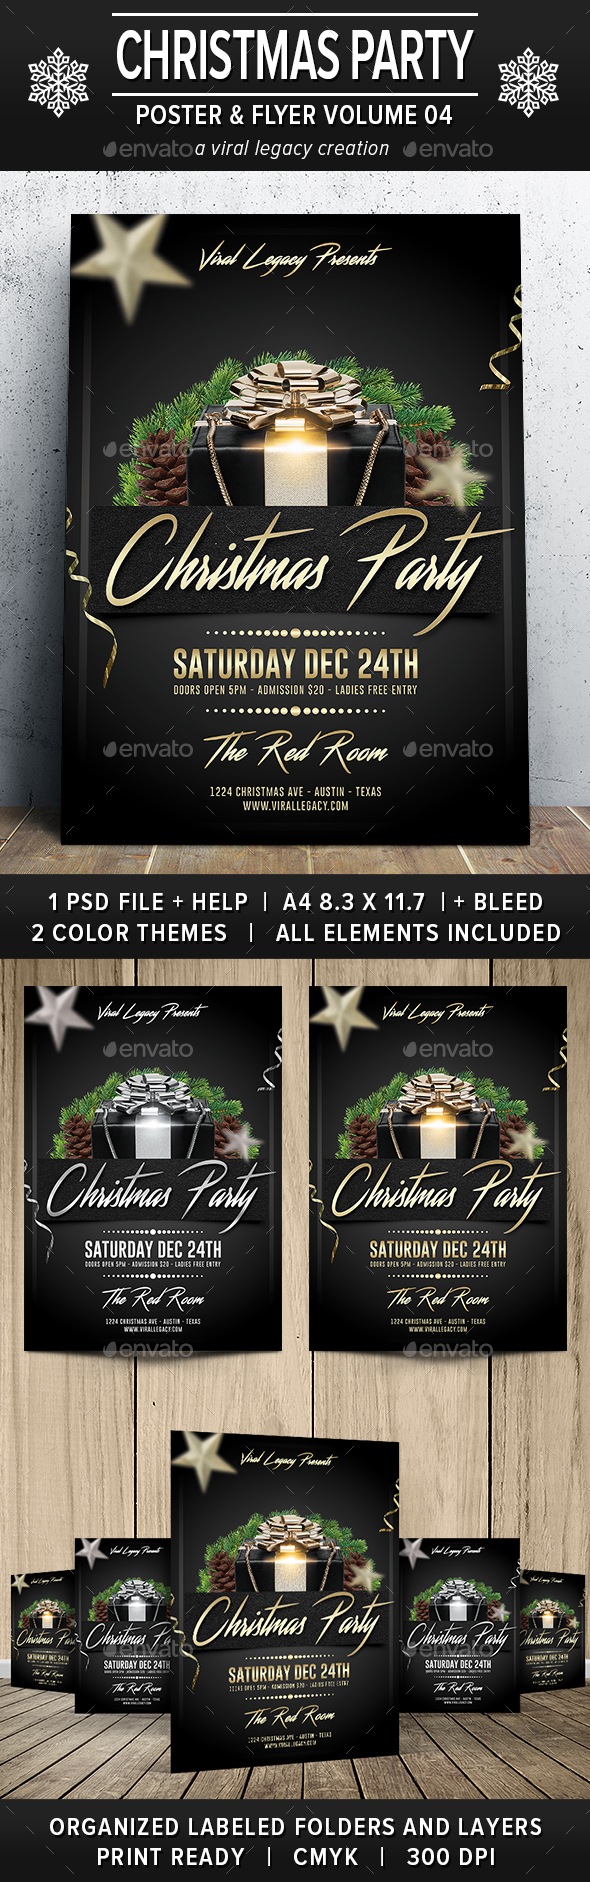 Christmas Party Poster / Flyer V04